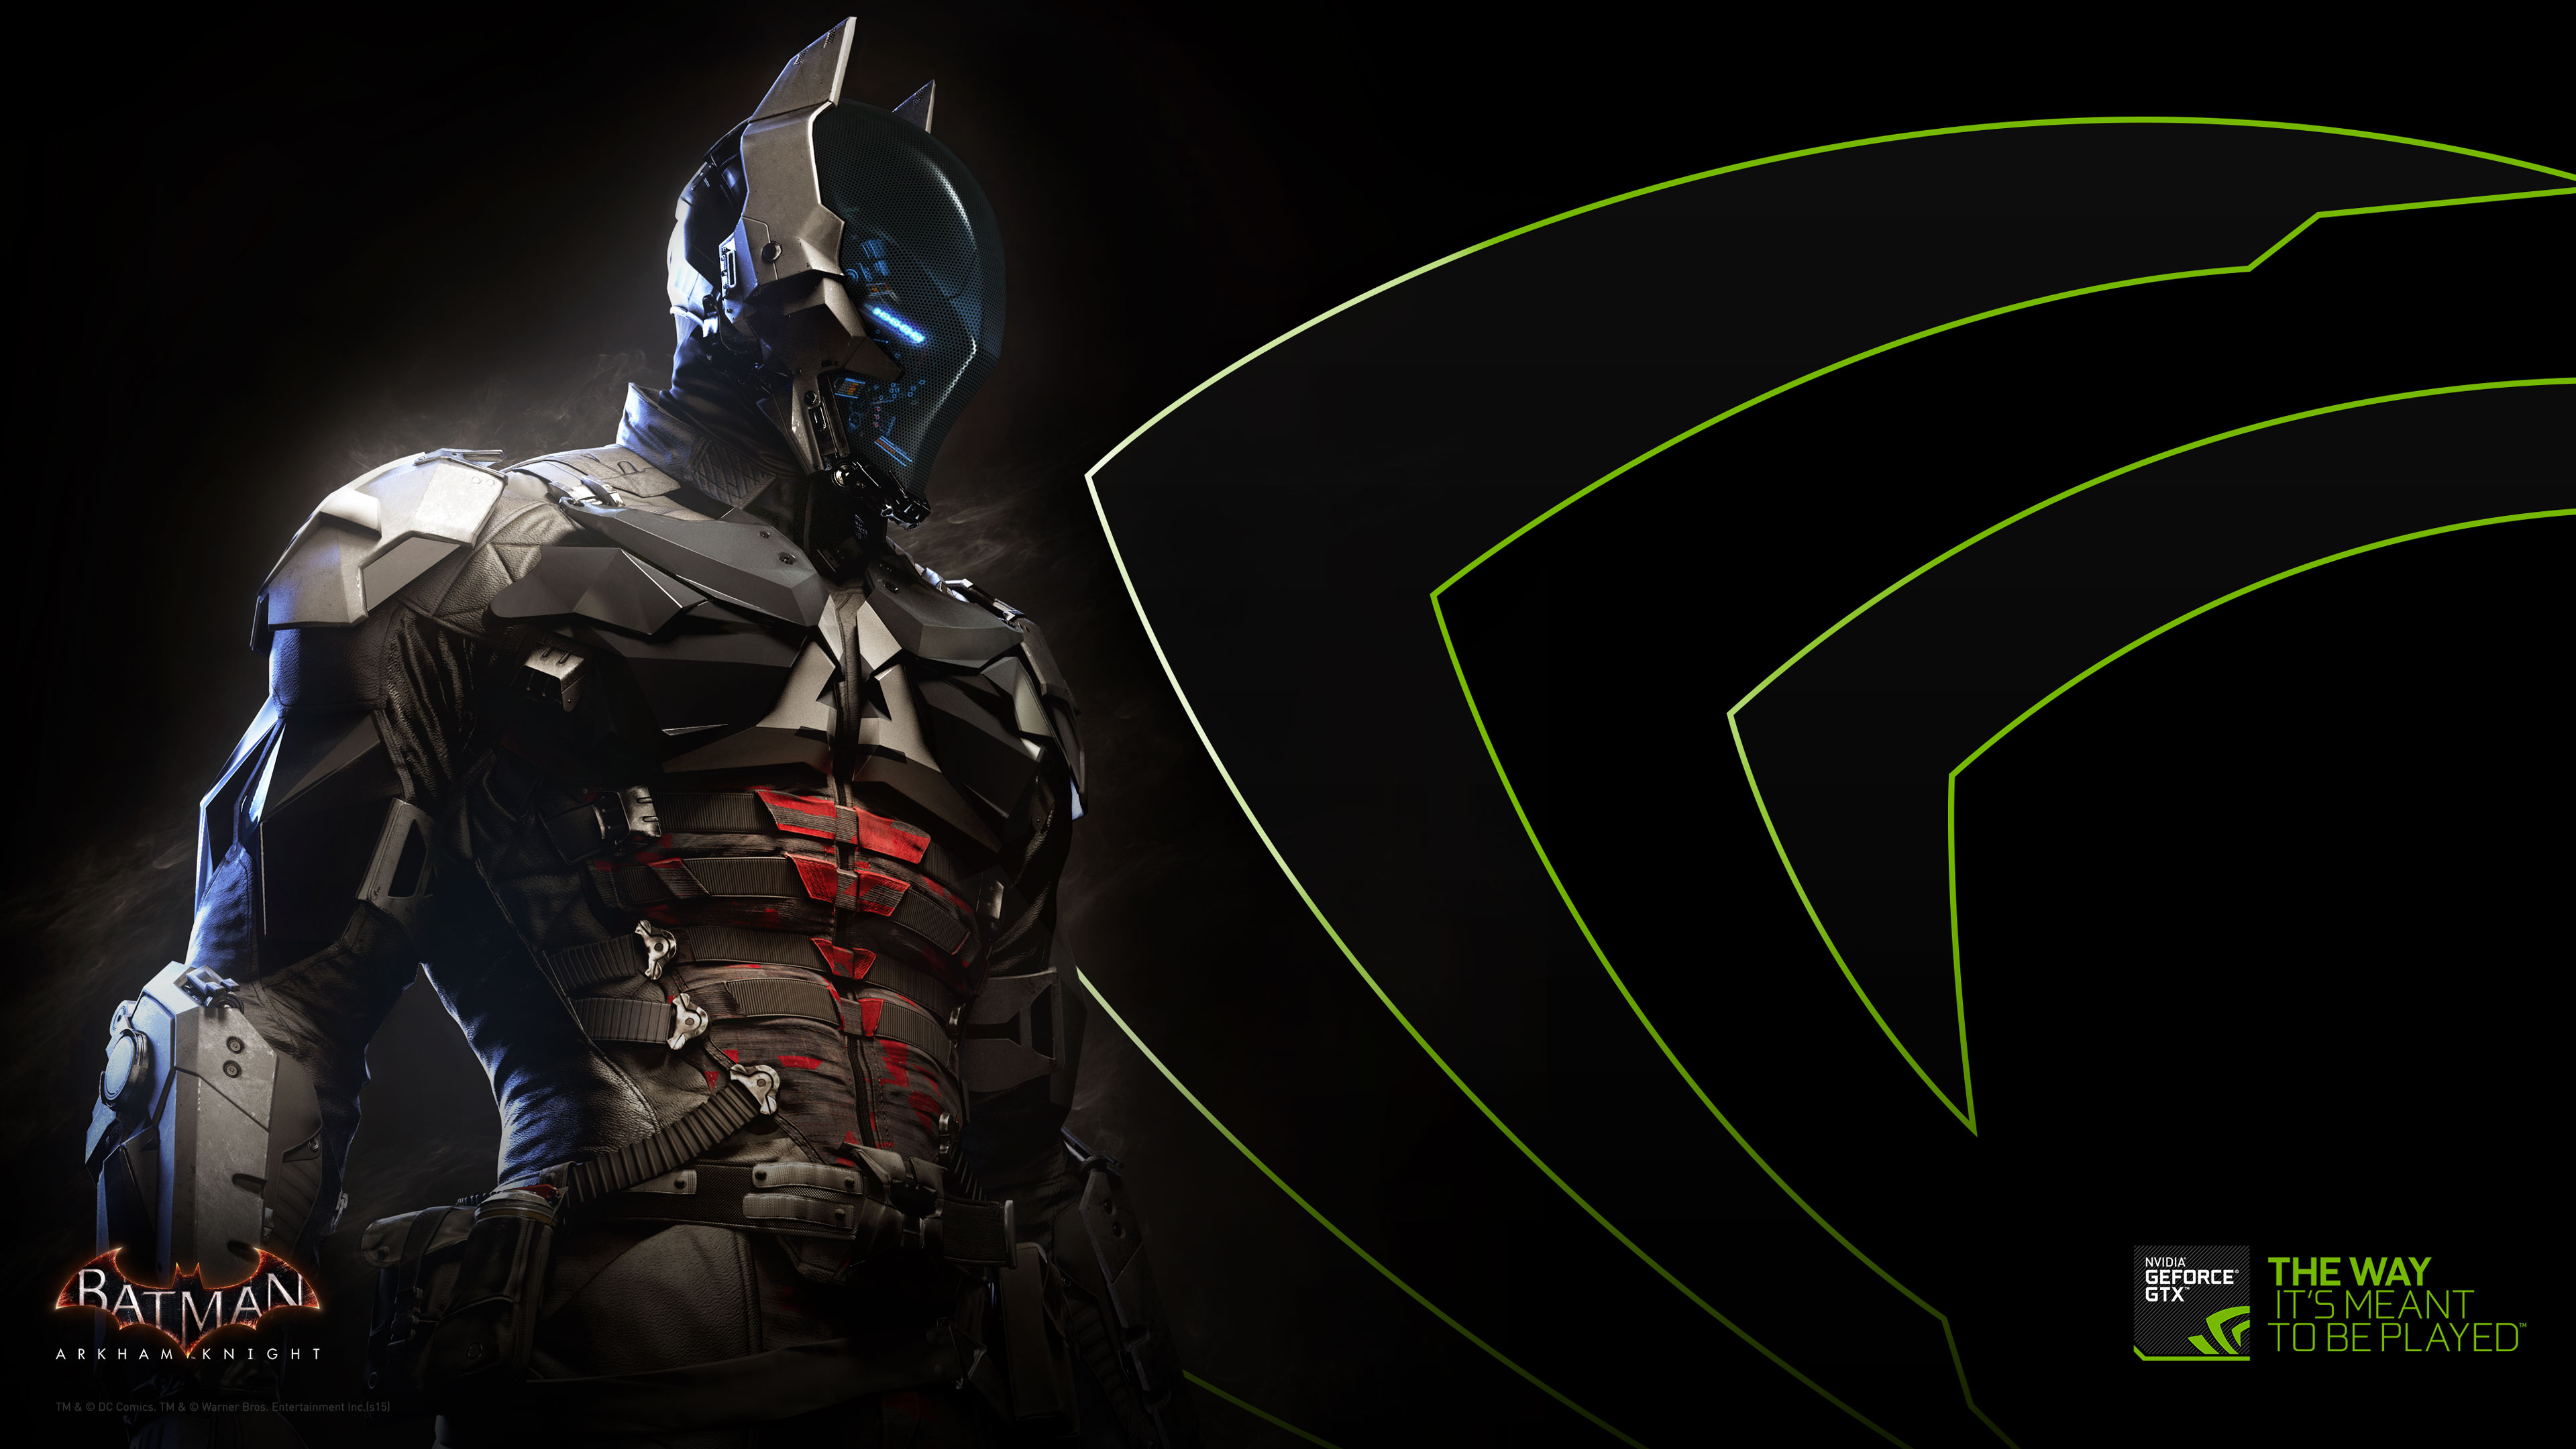 Download these Batman Arkham Knight Wallpapers GeForce